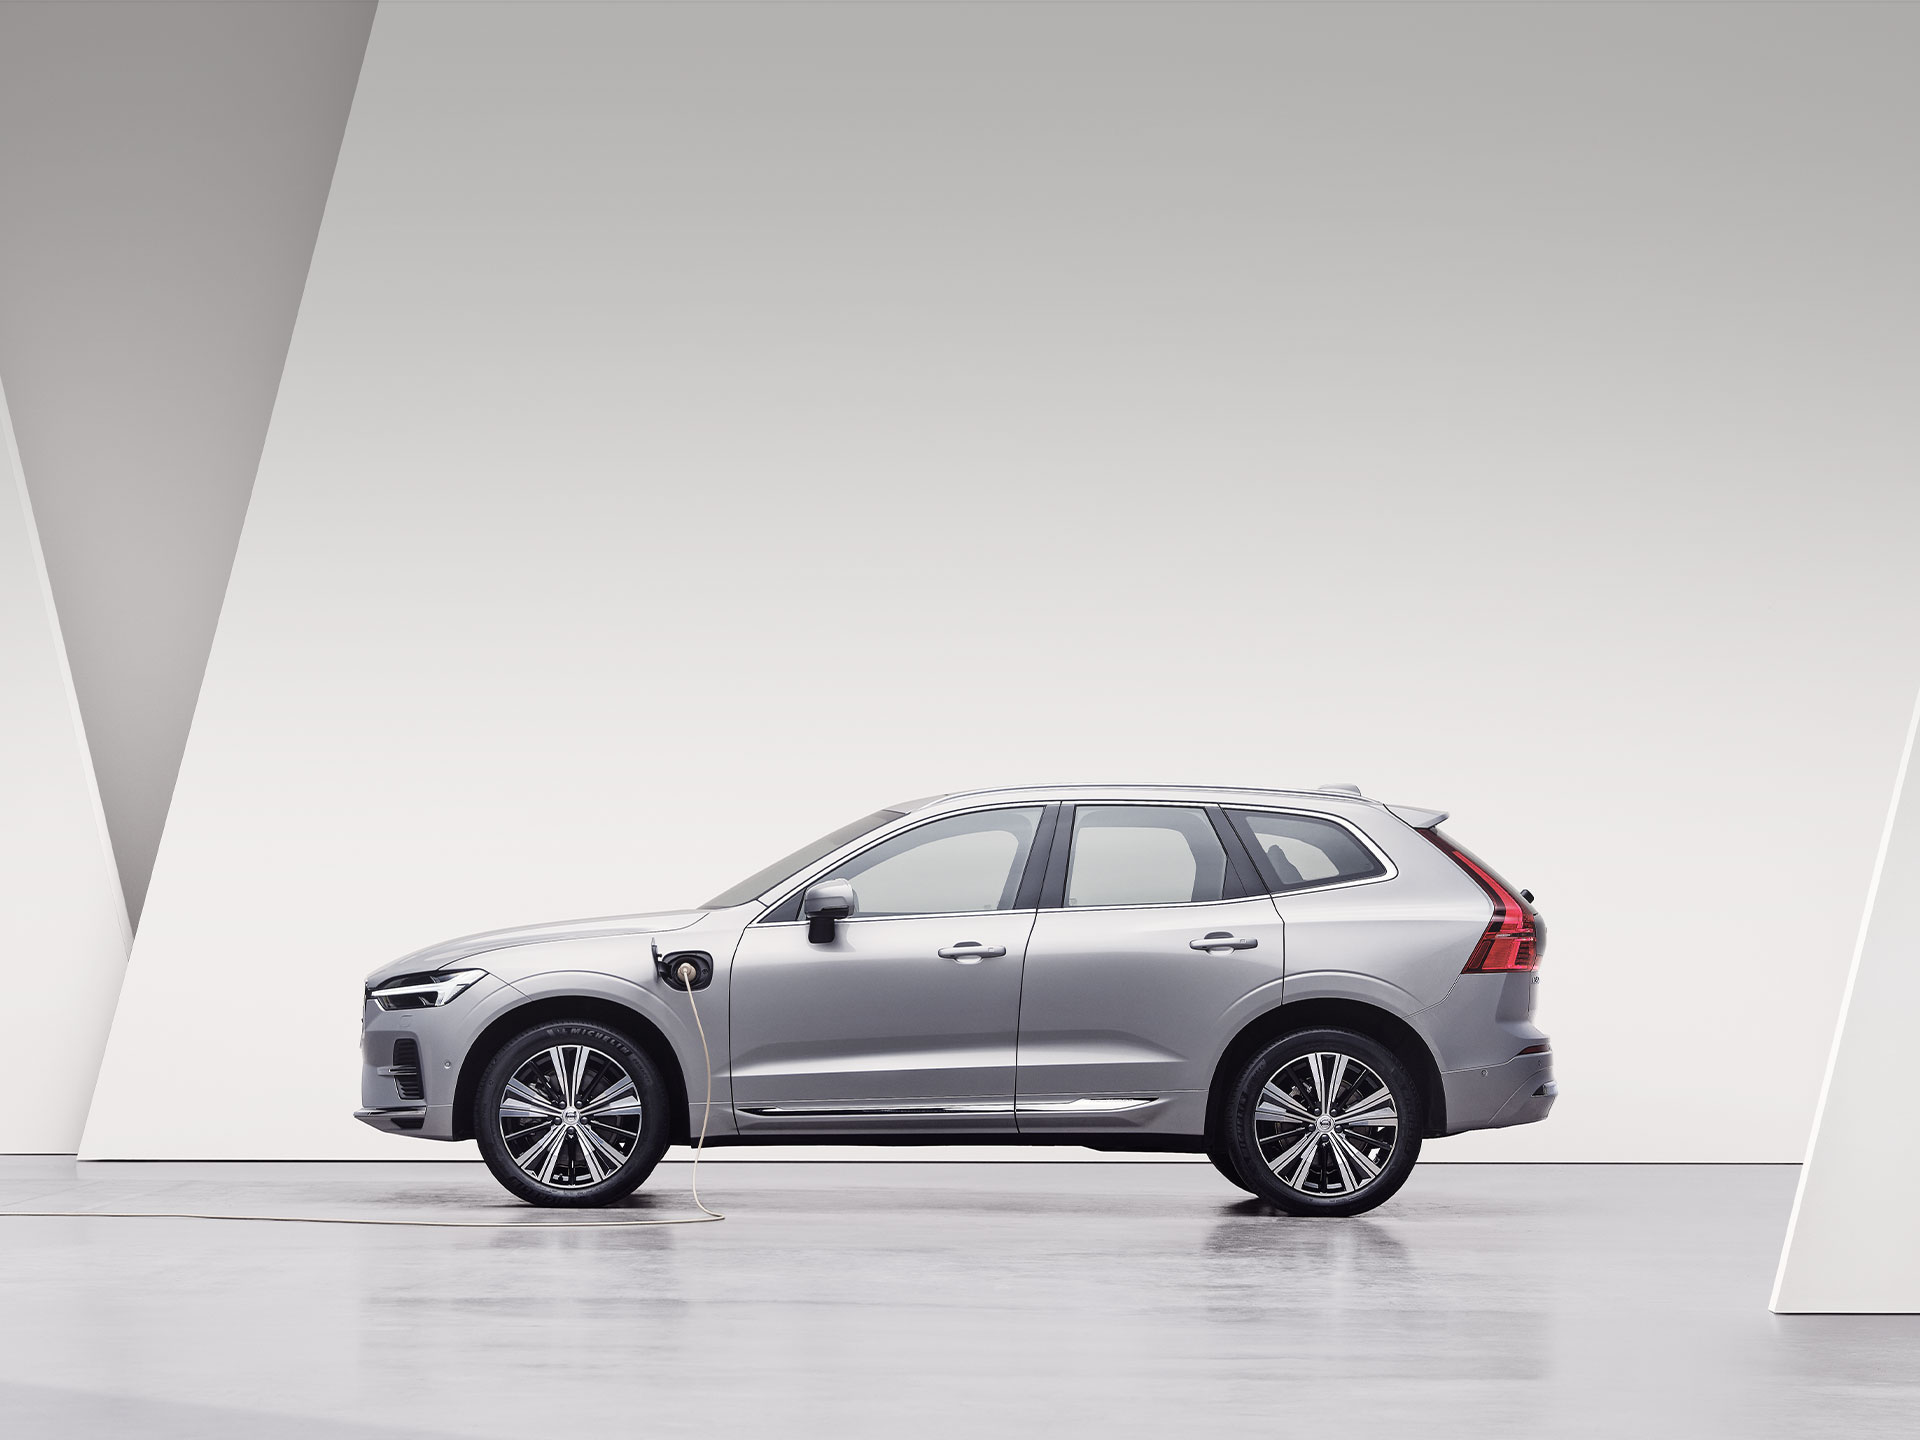 A silver Volvo XC60 Recharge, charging in white surroundings.